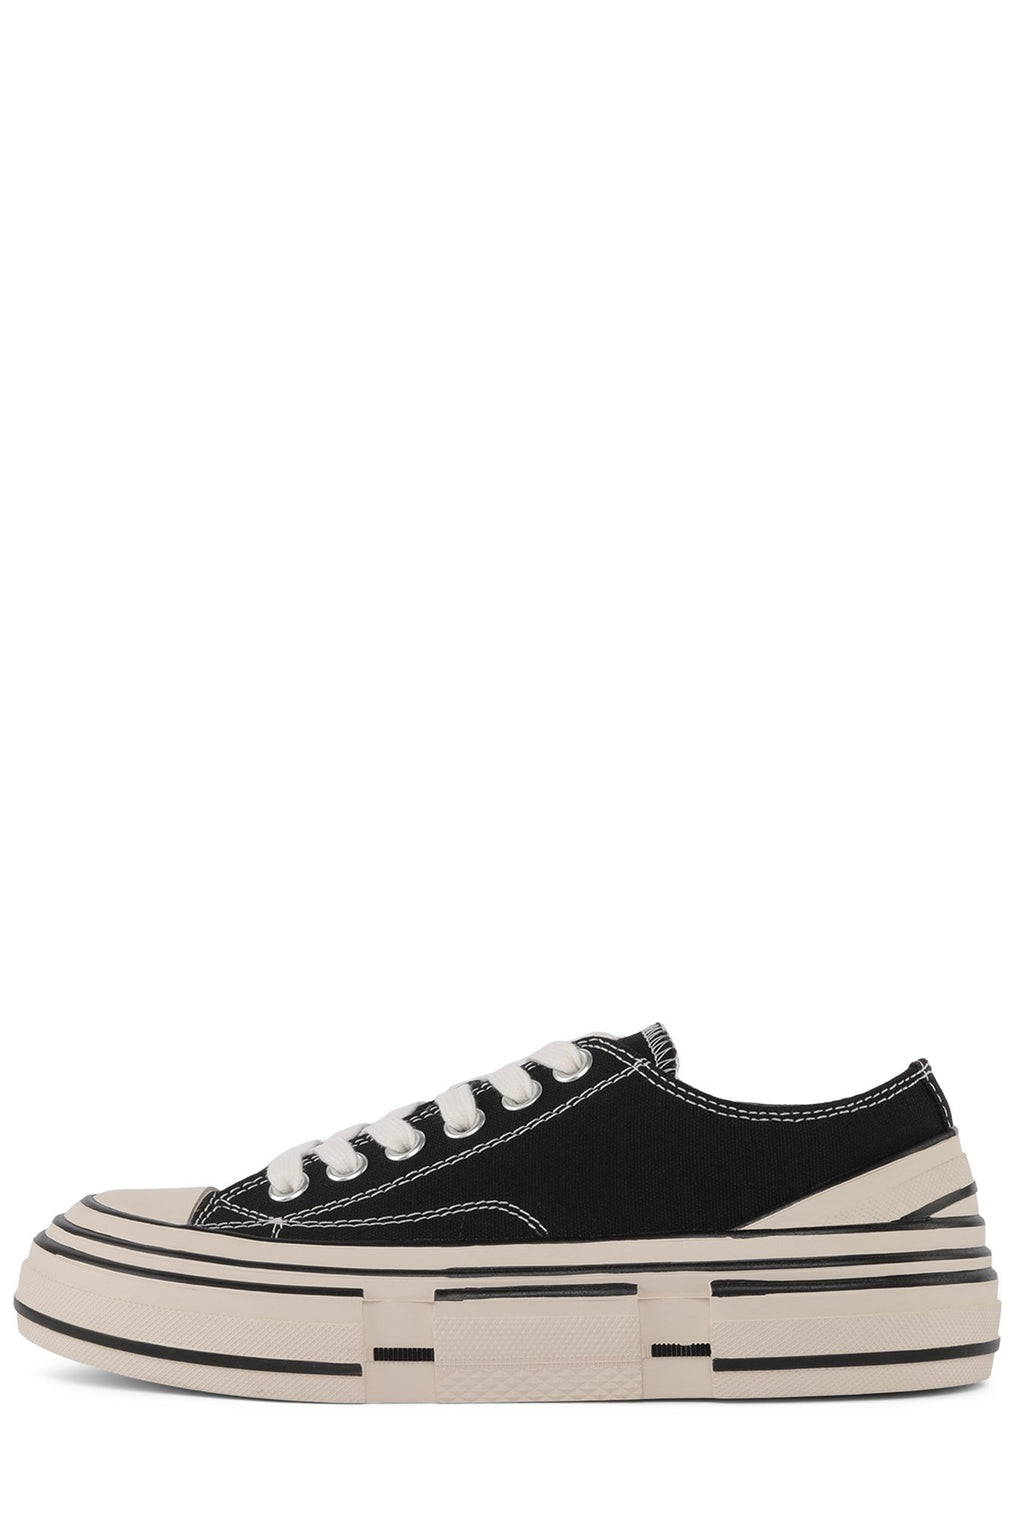 ENDORPHIN Platform Sneaker Jeffrey Campbell Black Canvas 6